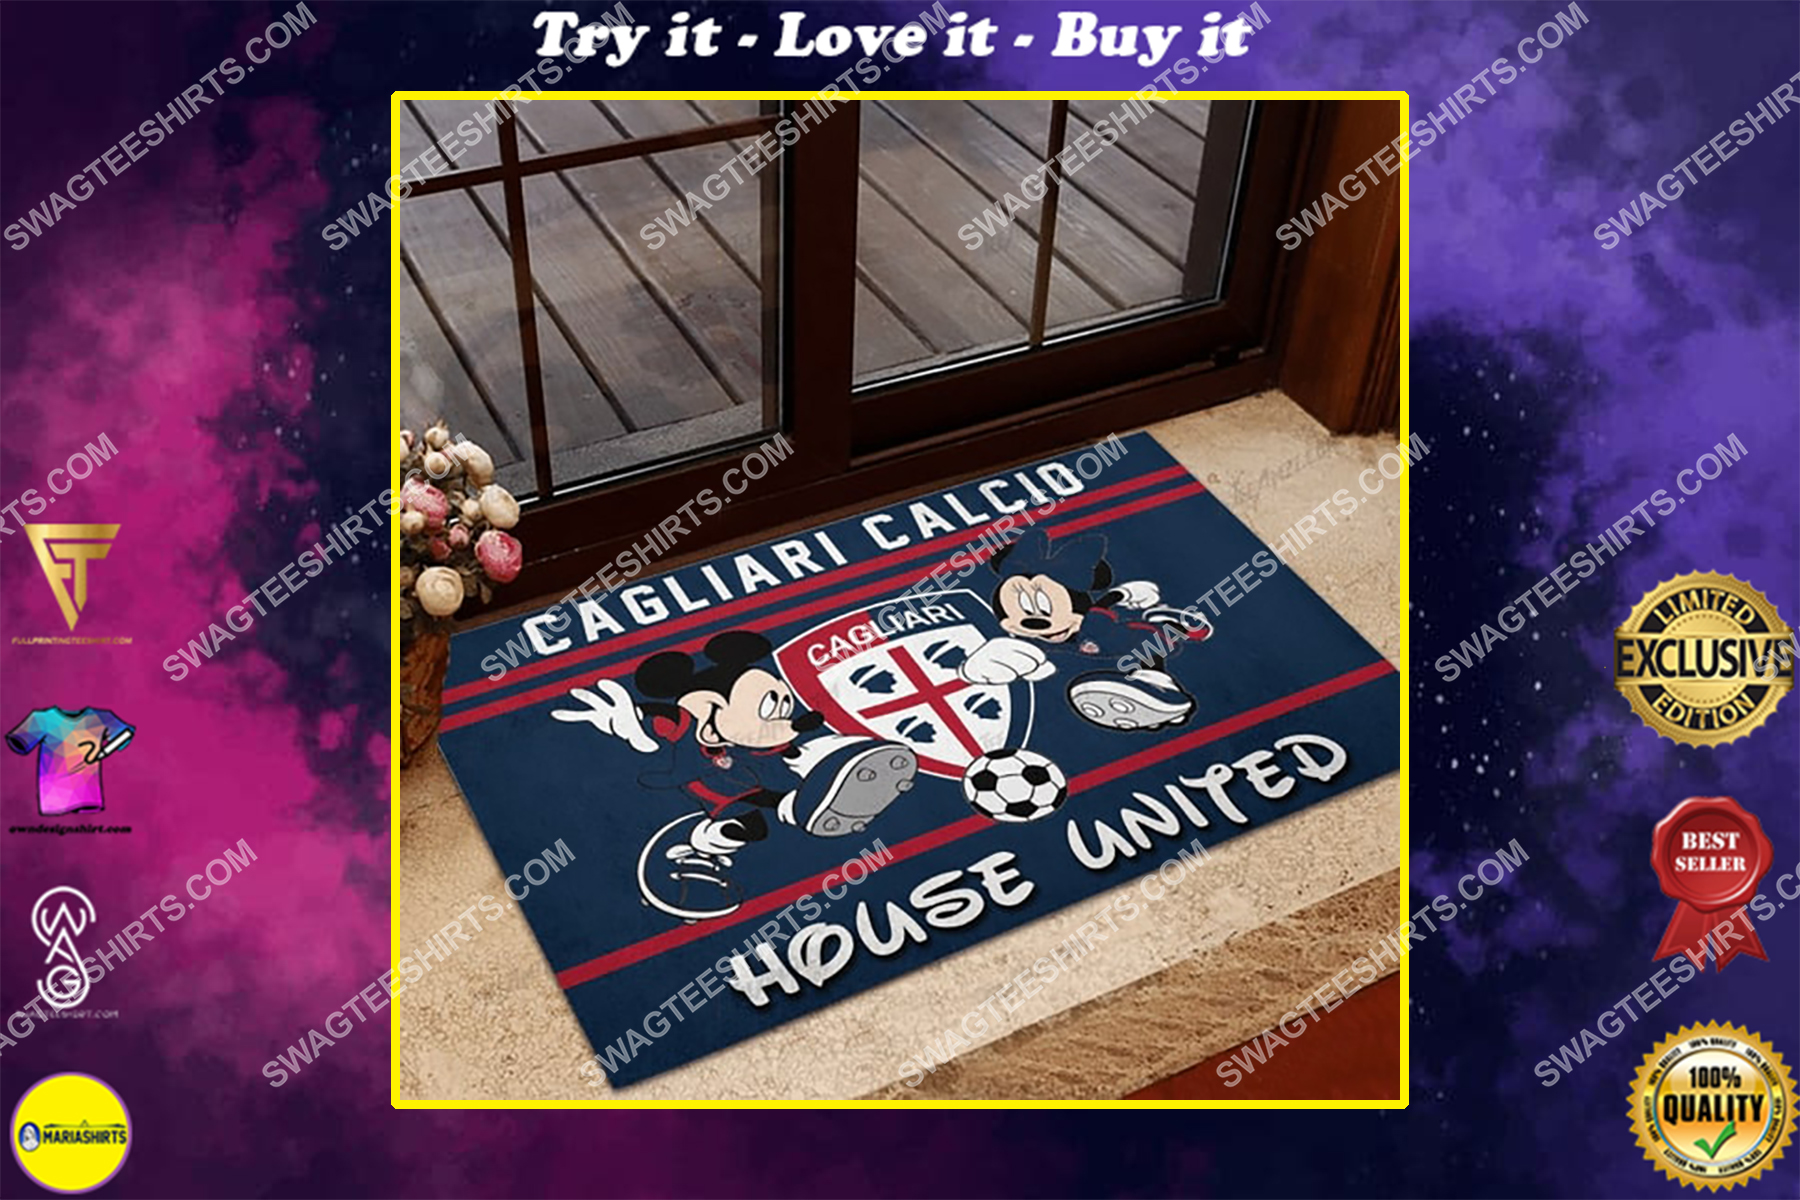 cagliari calcio house united mickey mouse and minnie mouse doormat